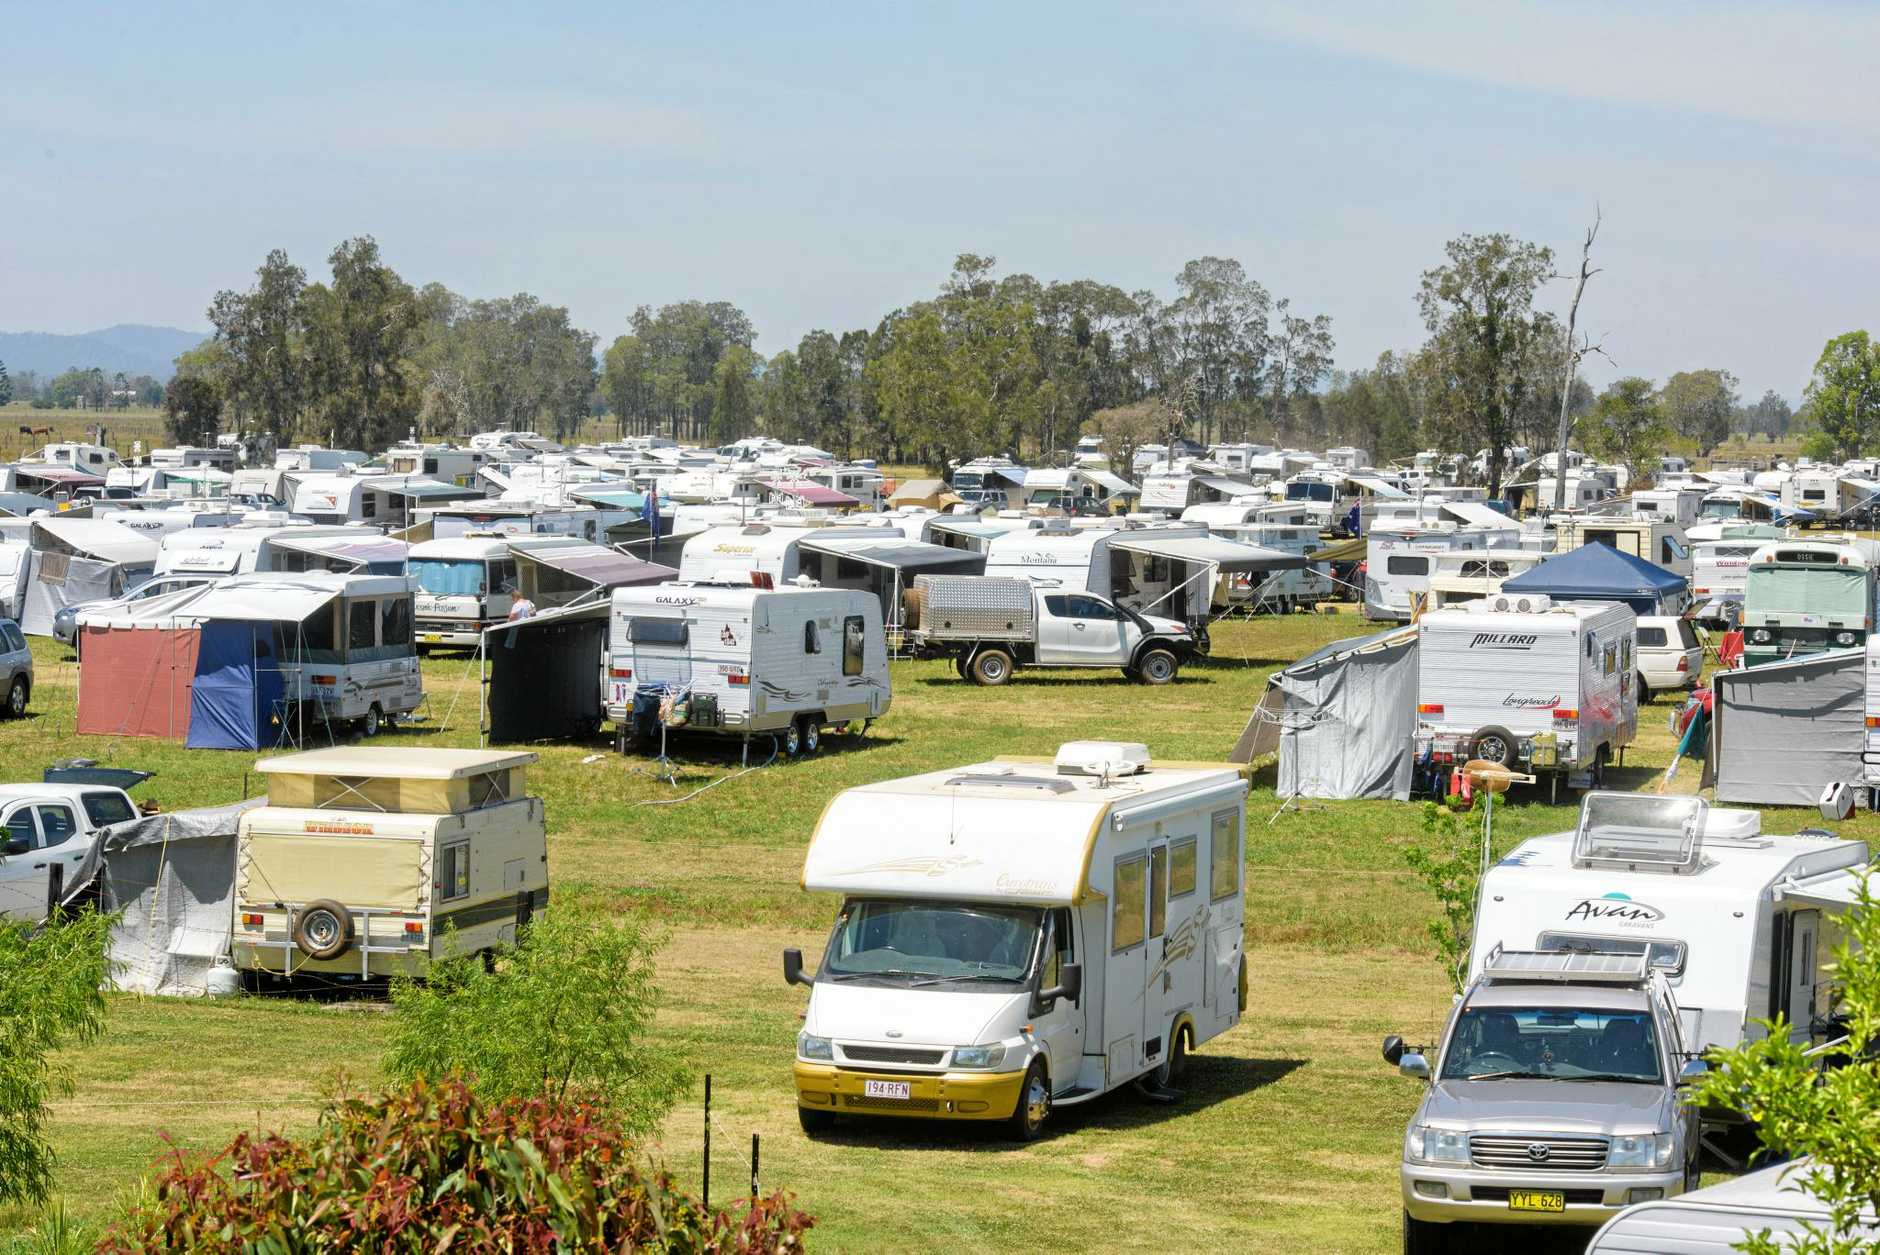 A small part of the caravan city at Wendy Gordon's Calliope property for the Clarence Valley Country Music Muster.